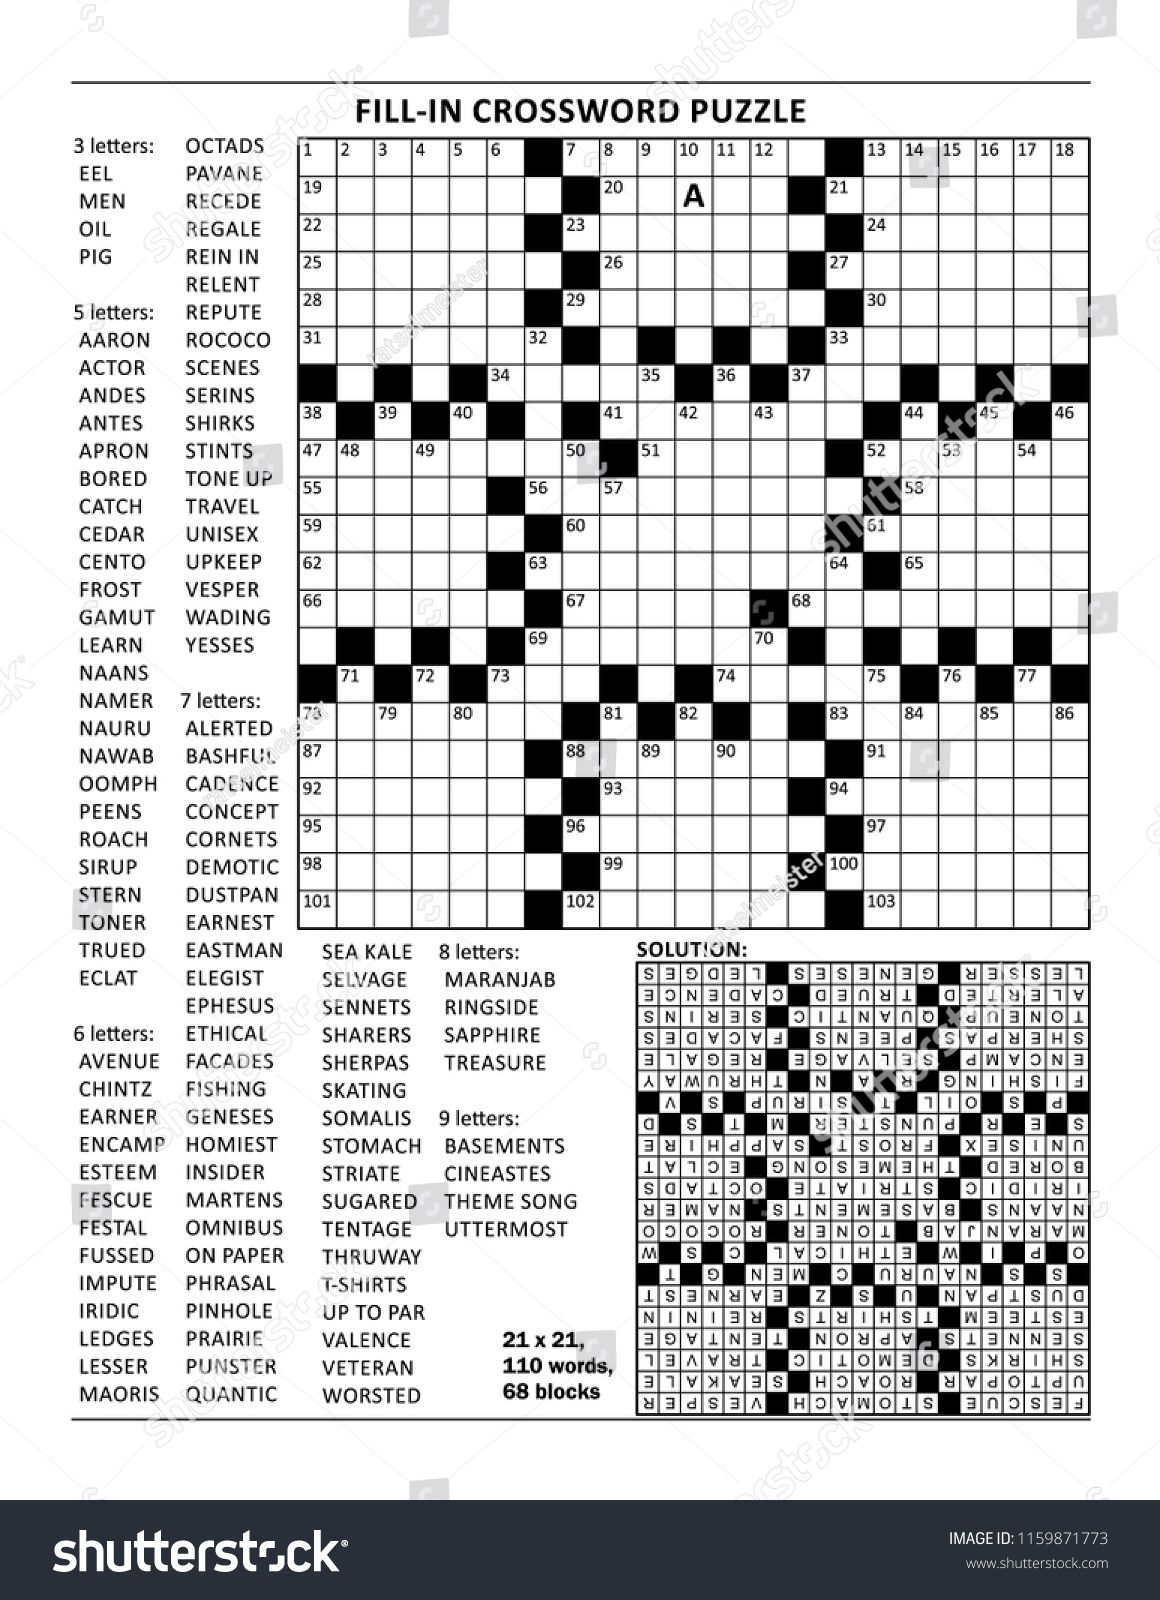 Fill In The Blanks Crossword Puzzle With American Style Grid Of - Printable Blank Crossword Puzzle Grid